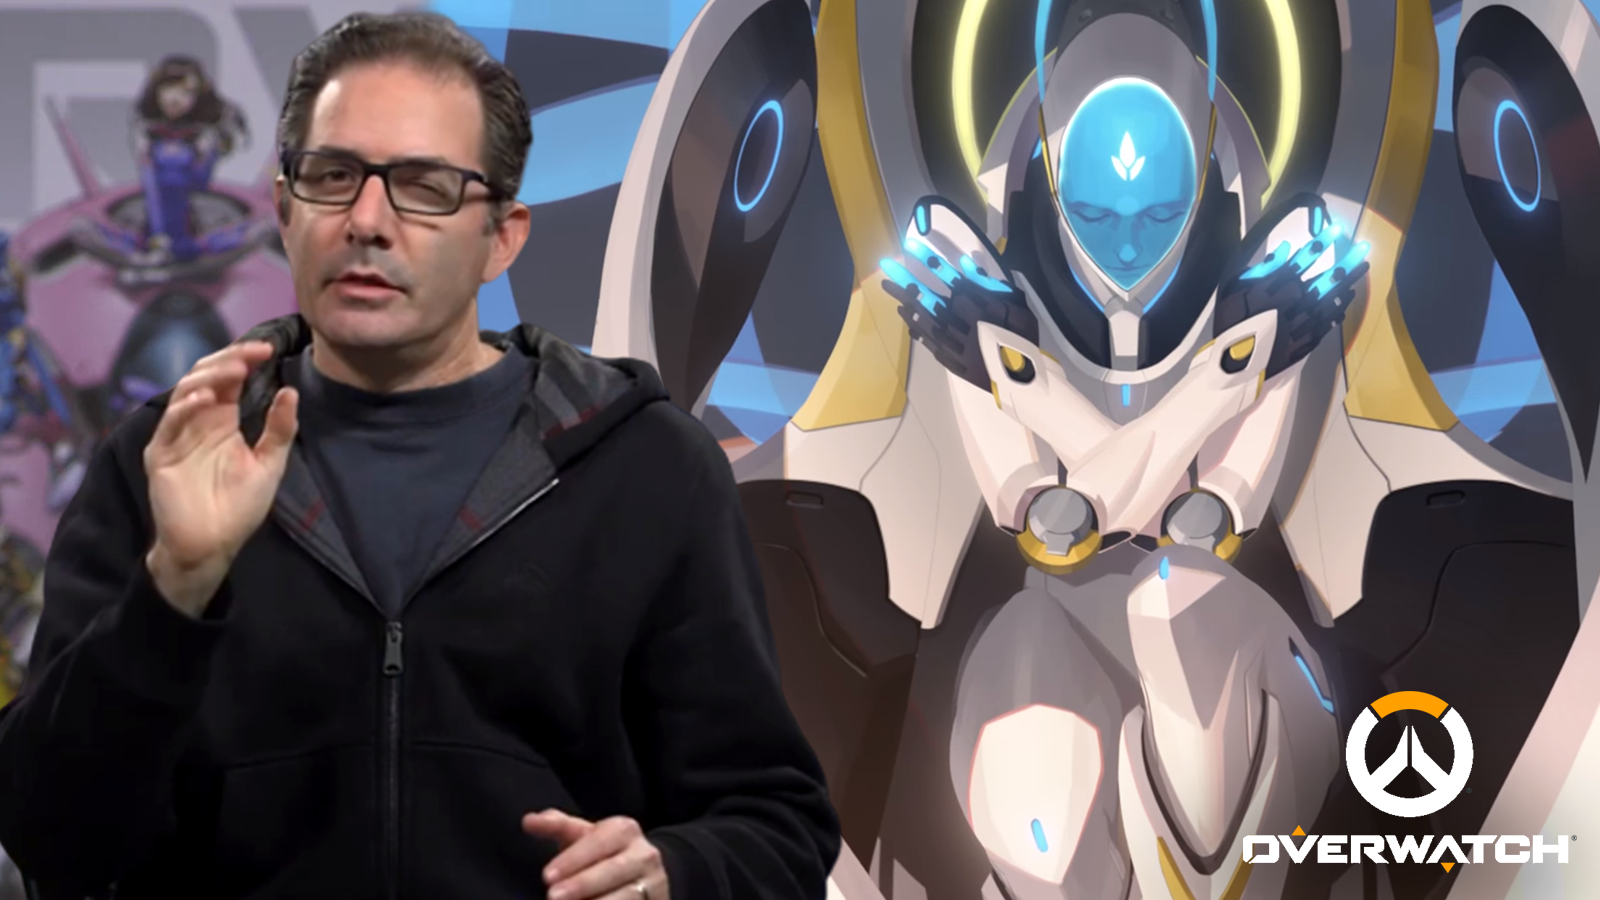 Jeff Kaplan has revealed why there will be no more Overwatch heroes